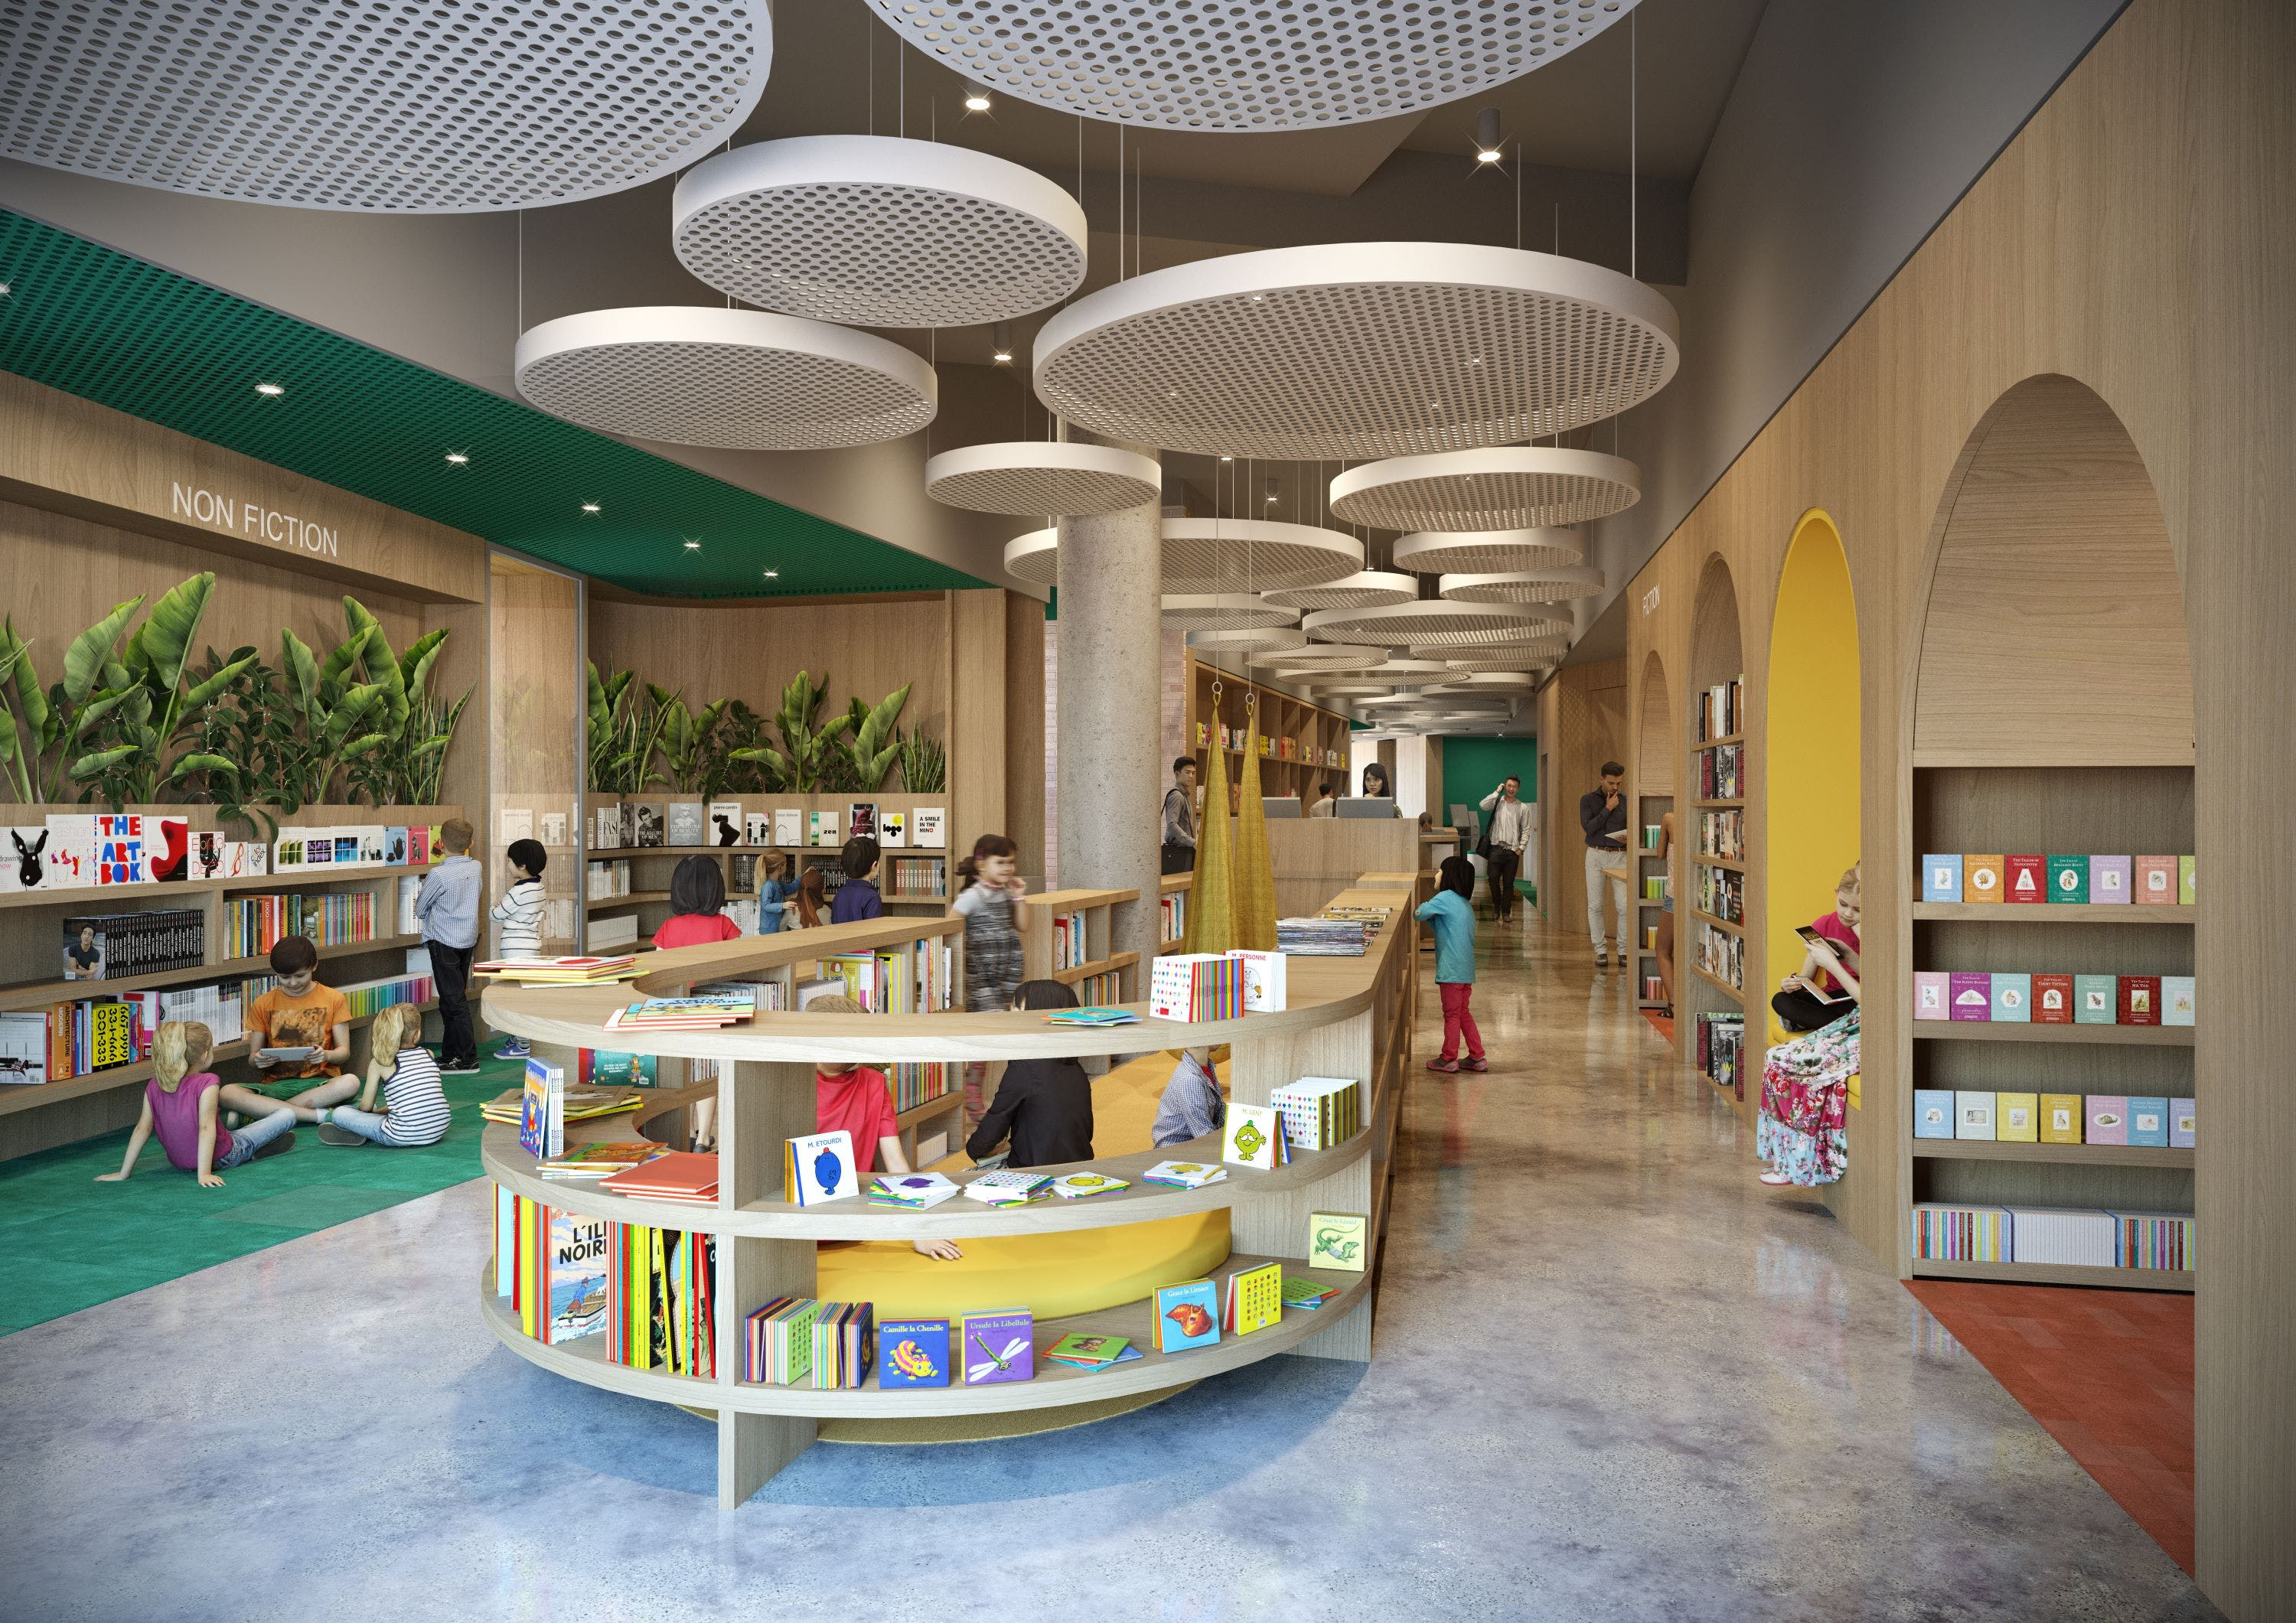 Cultural & Civic Space - New Central Library, Museum, Gallery and council administration offices, Council meeting space and customer service facilities